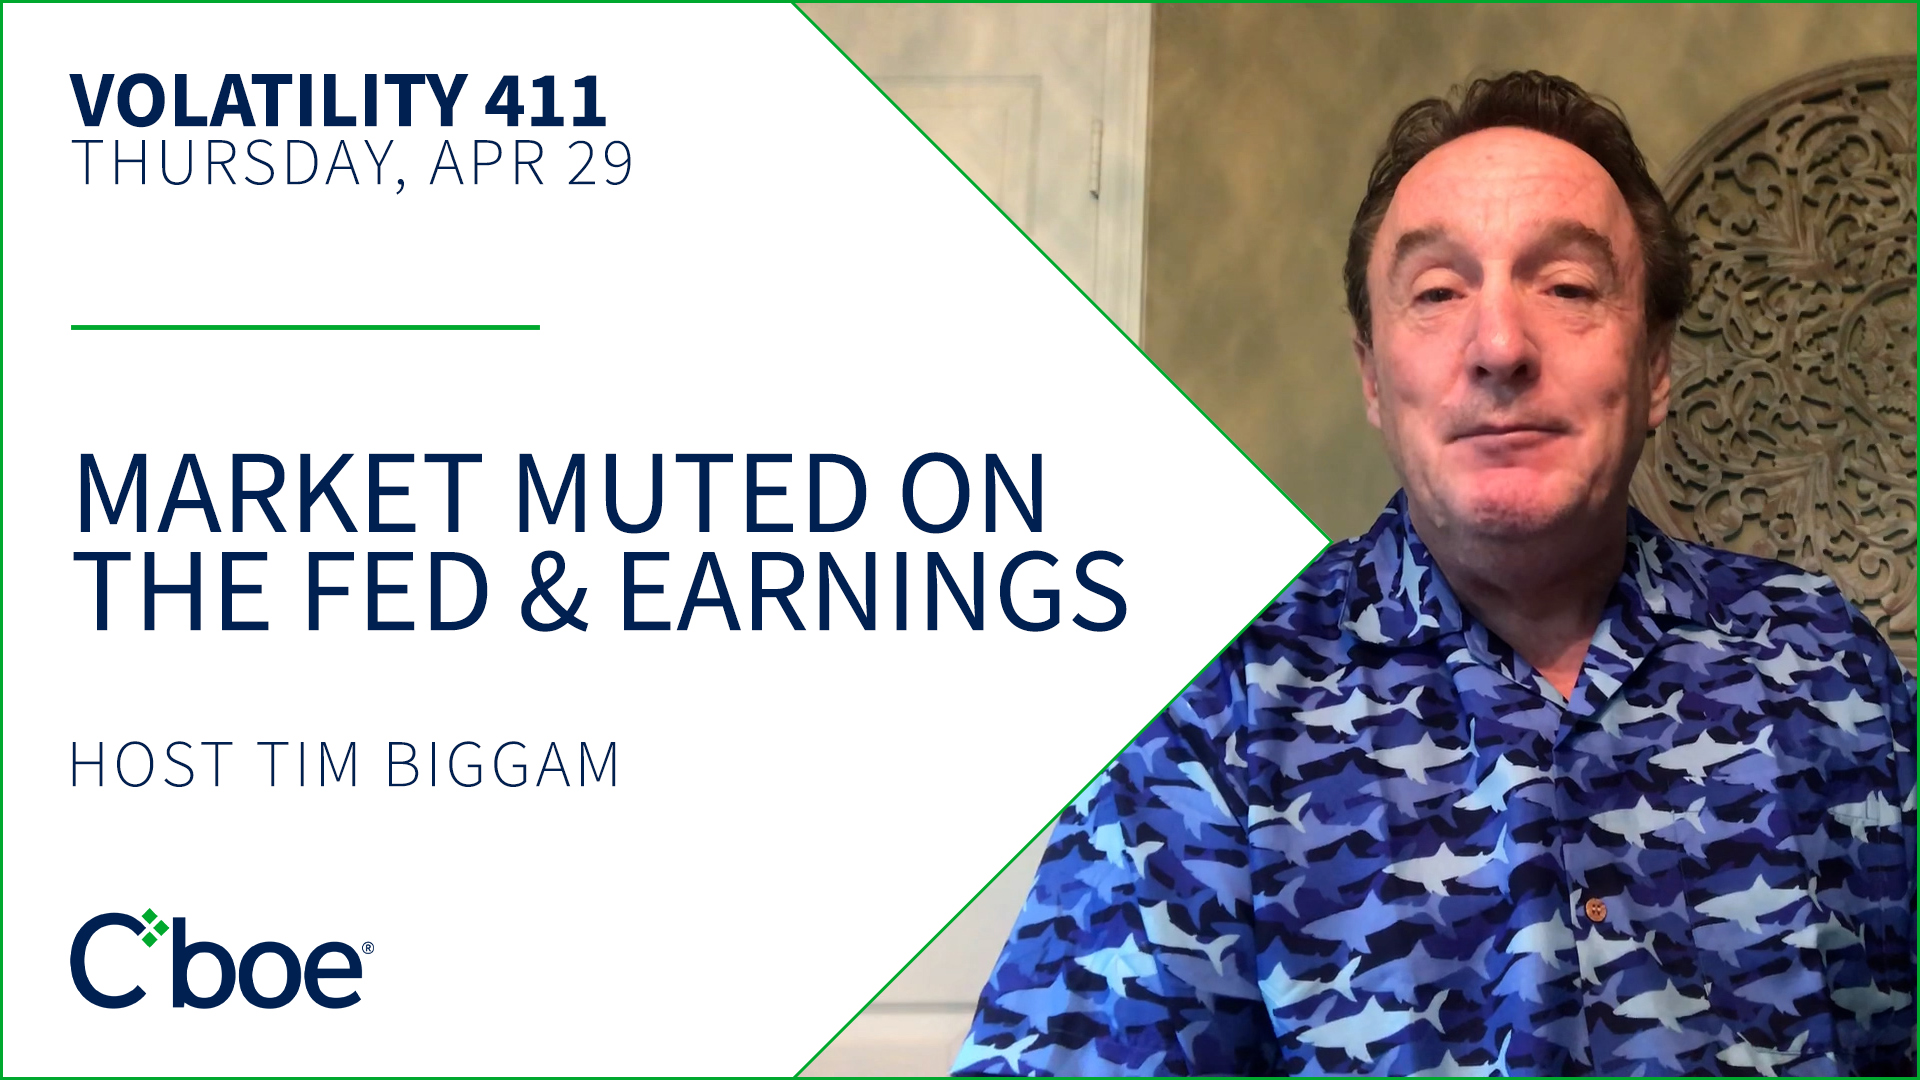 Market Muted on the Fed & Earnings Thumbnail